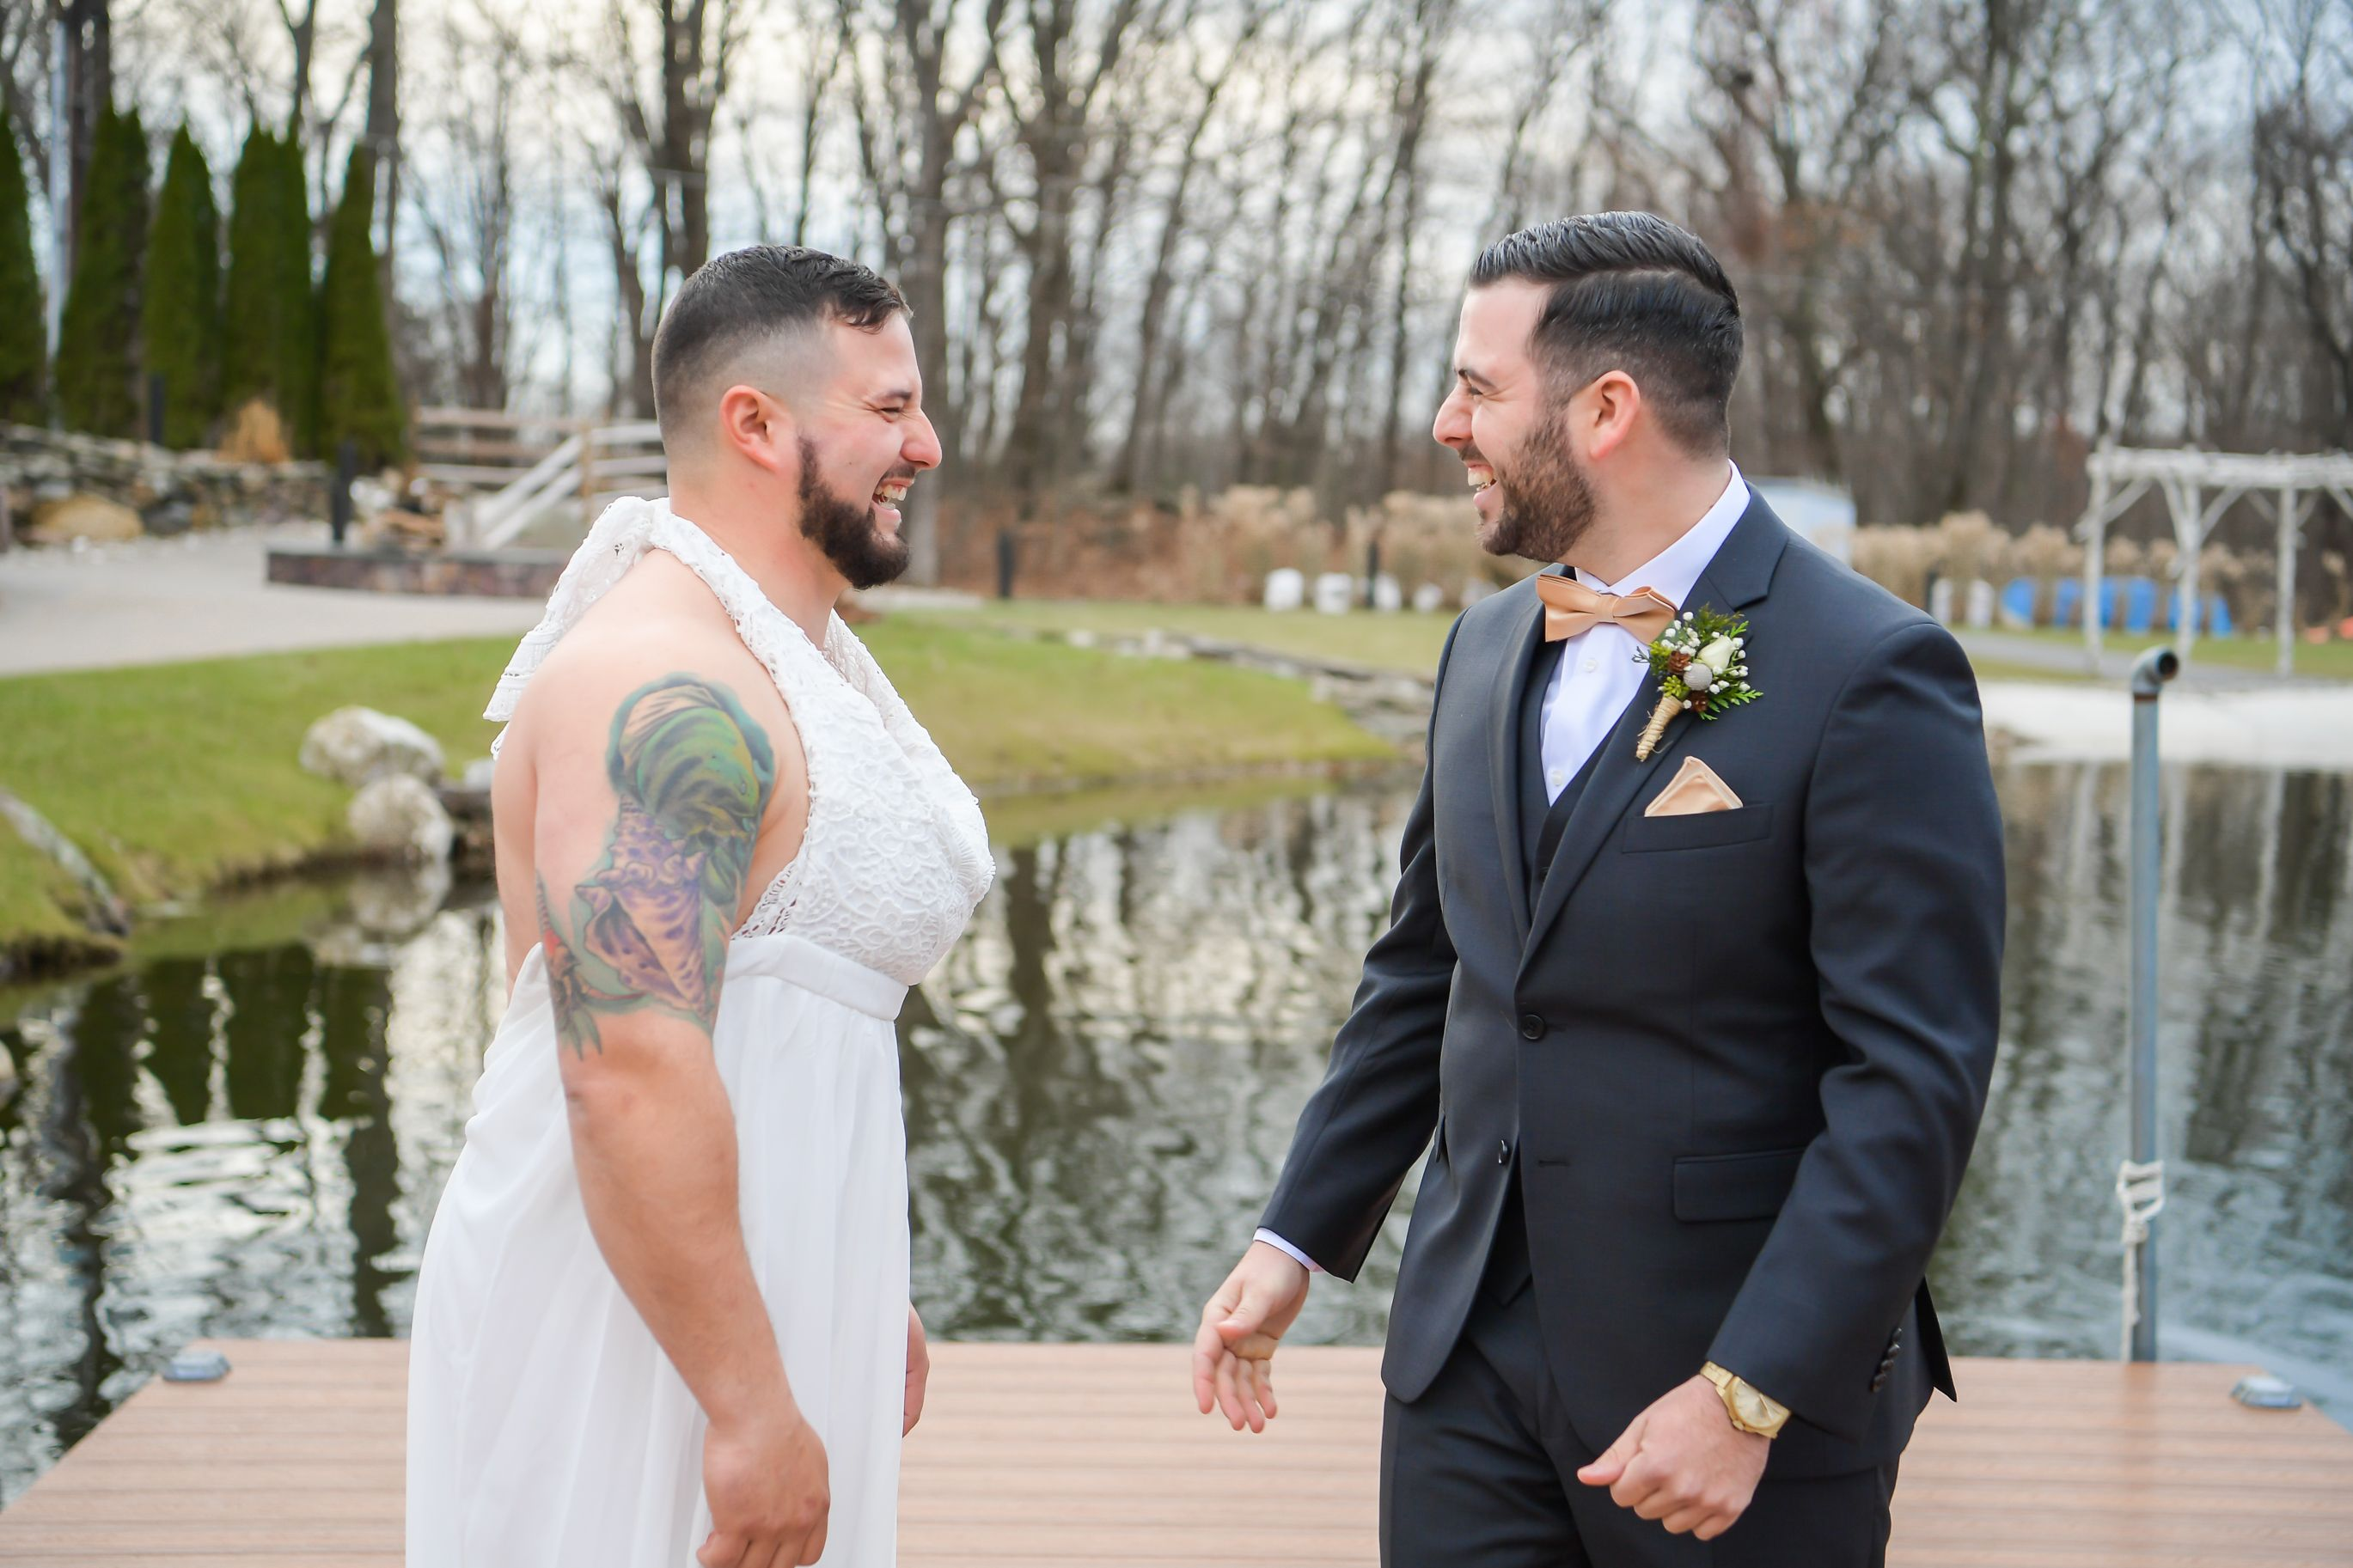 Clint Watts Wedding.Groomsman Pranks The Groom During The First Look At Lakeside Wedding